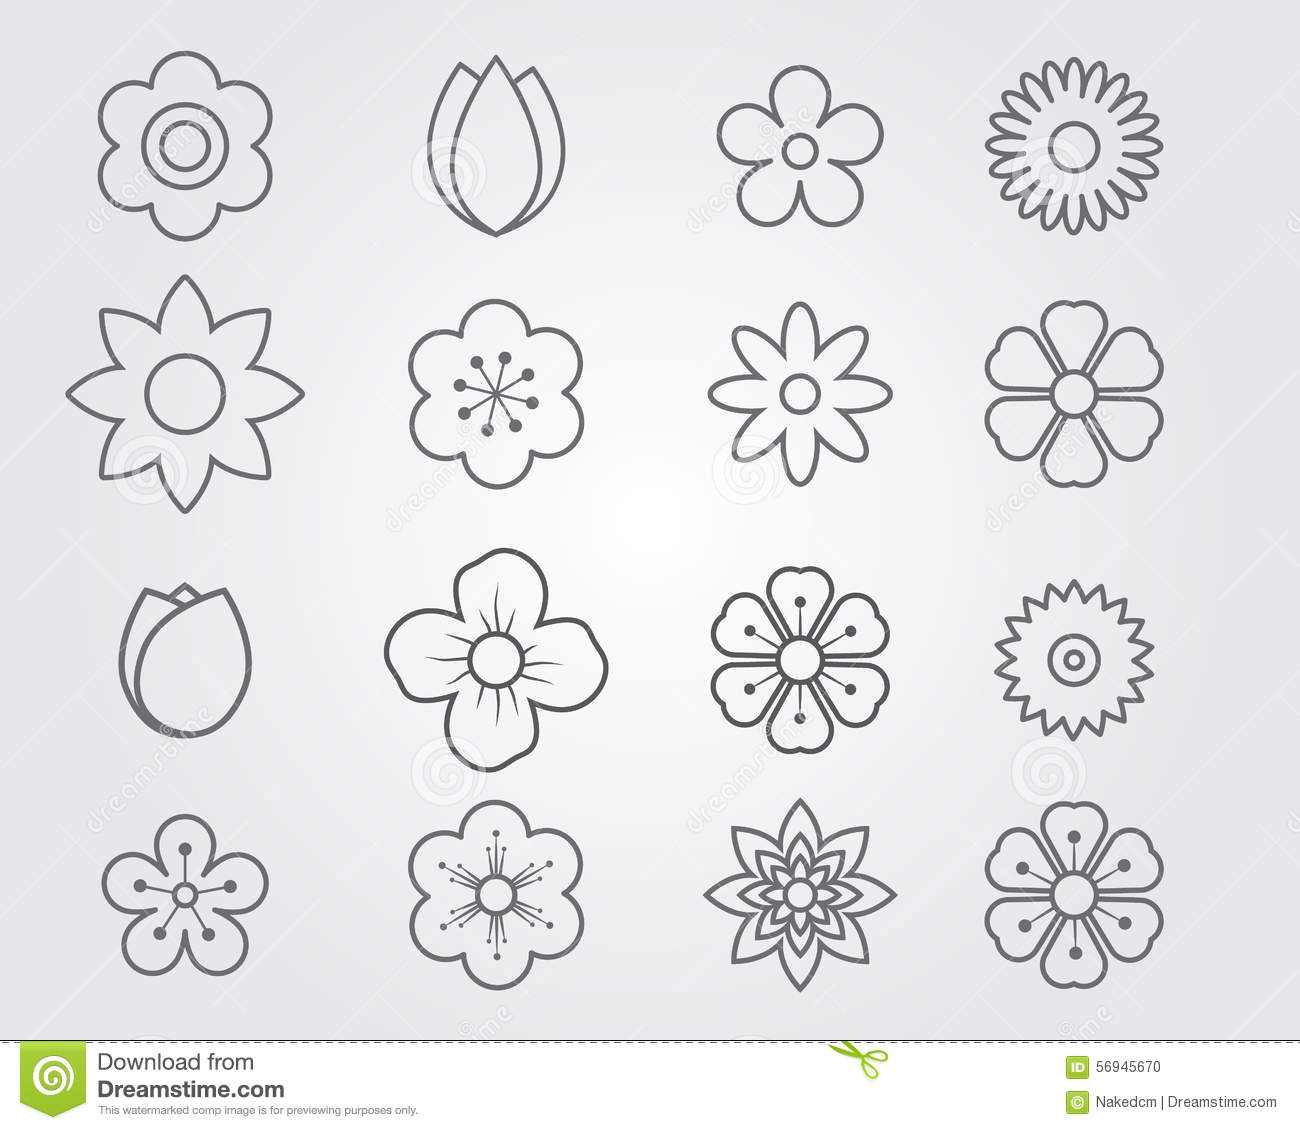 Flower Line Drawing Icon : Flower icon line set stock vector image of element